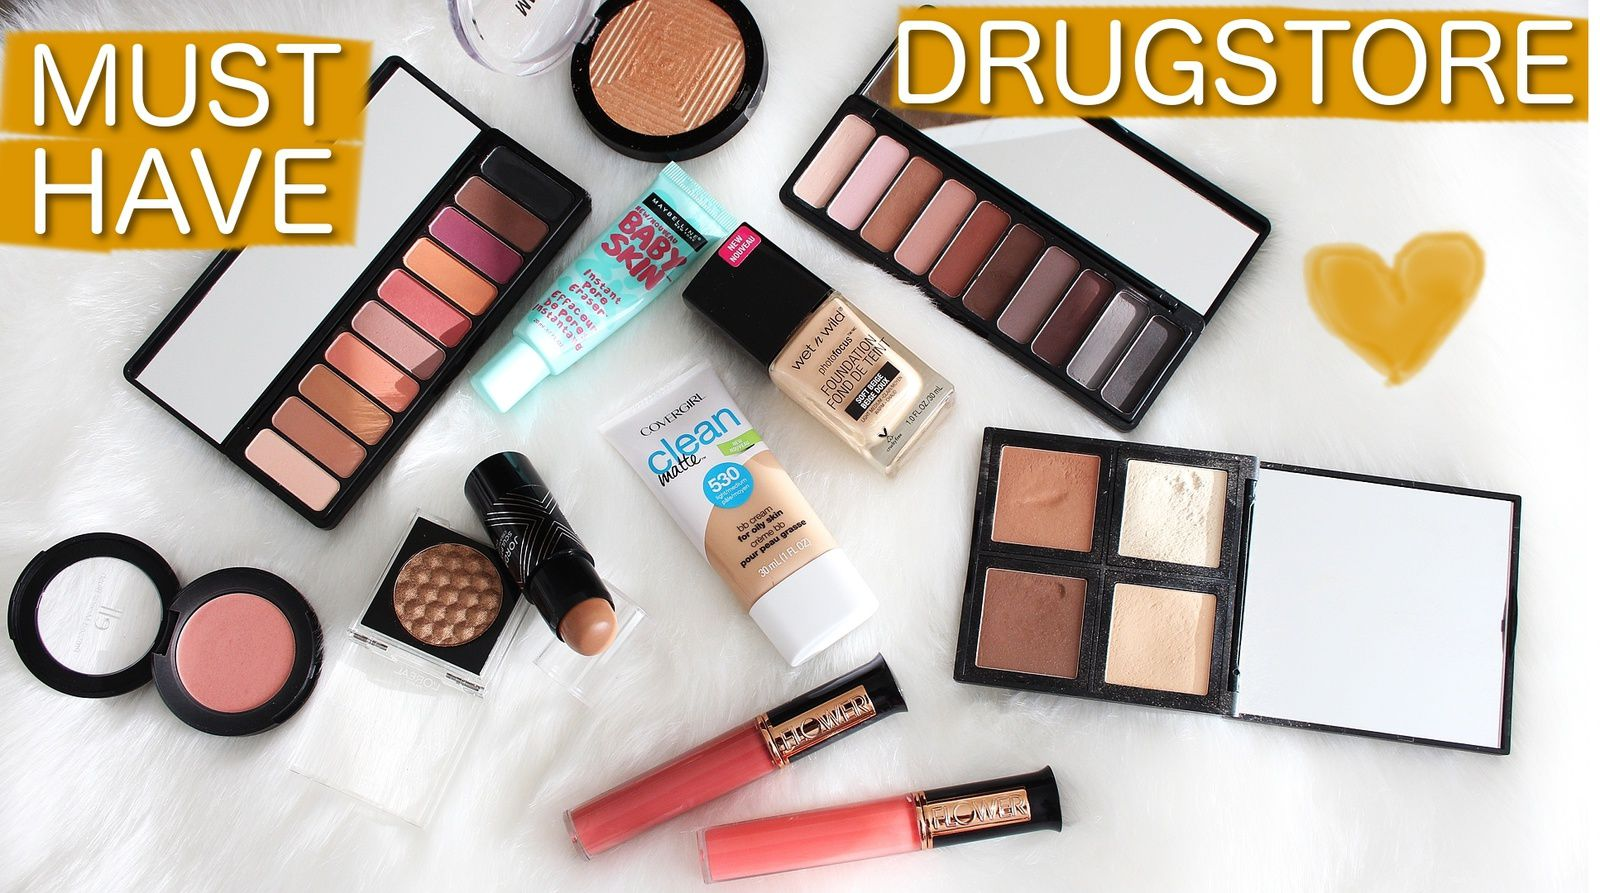 MUST HAVE DRUGSTORE PRODUCTS! 2017